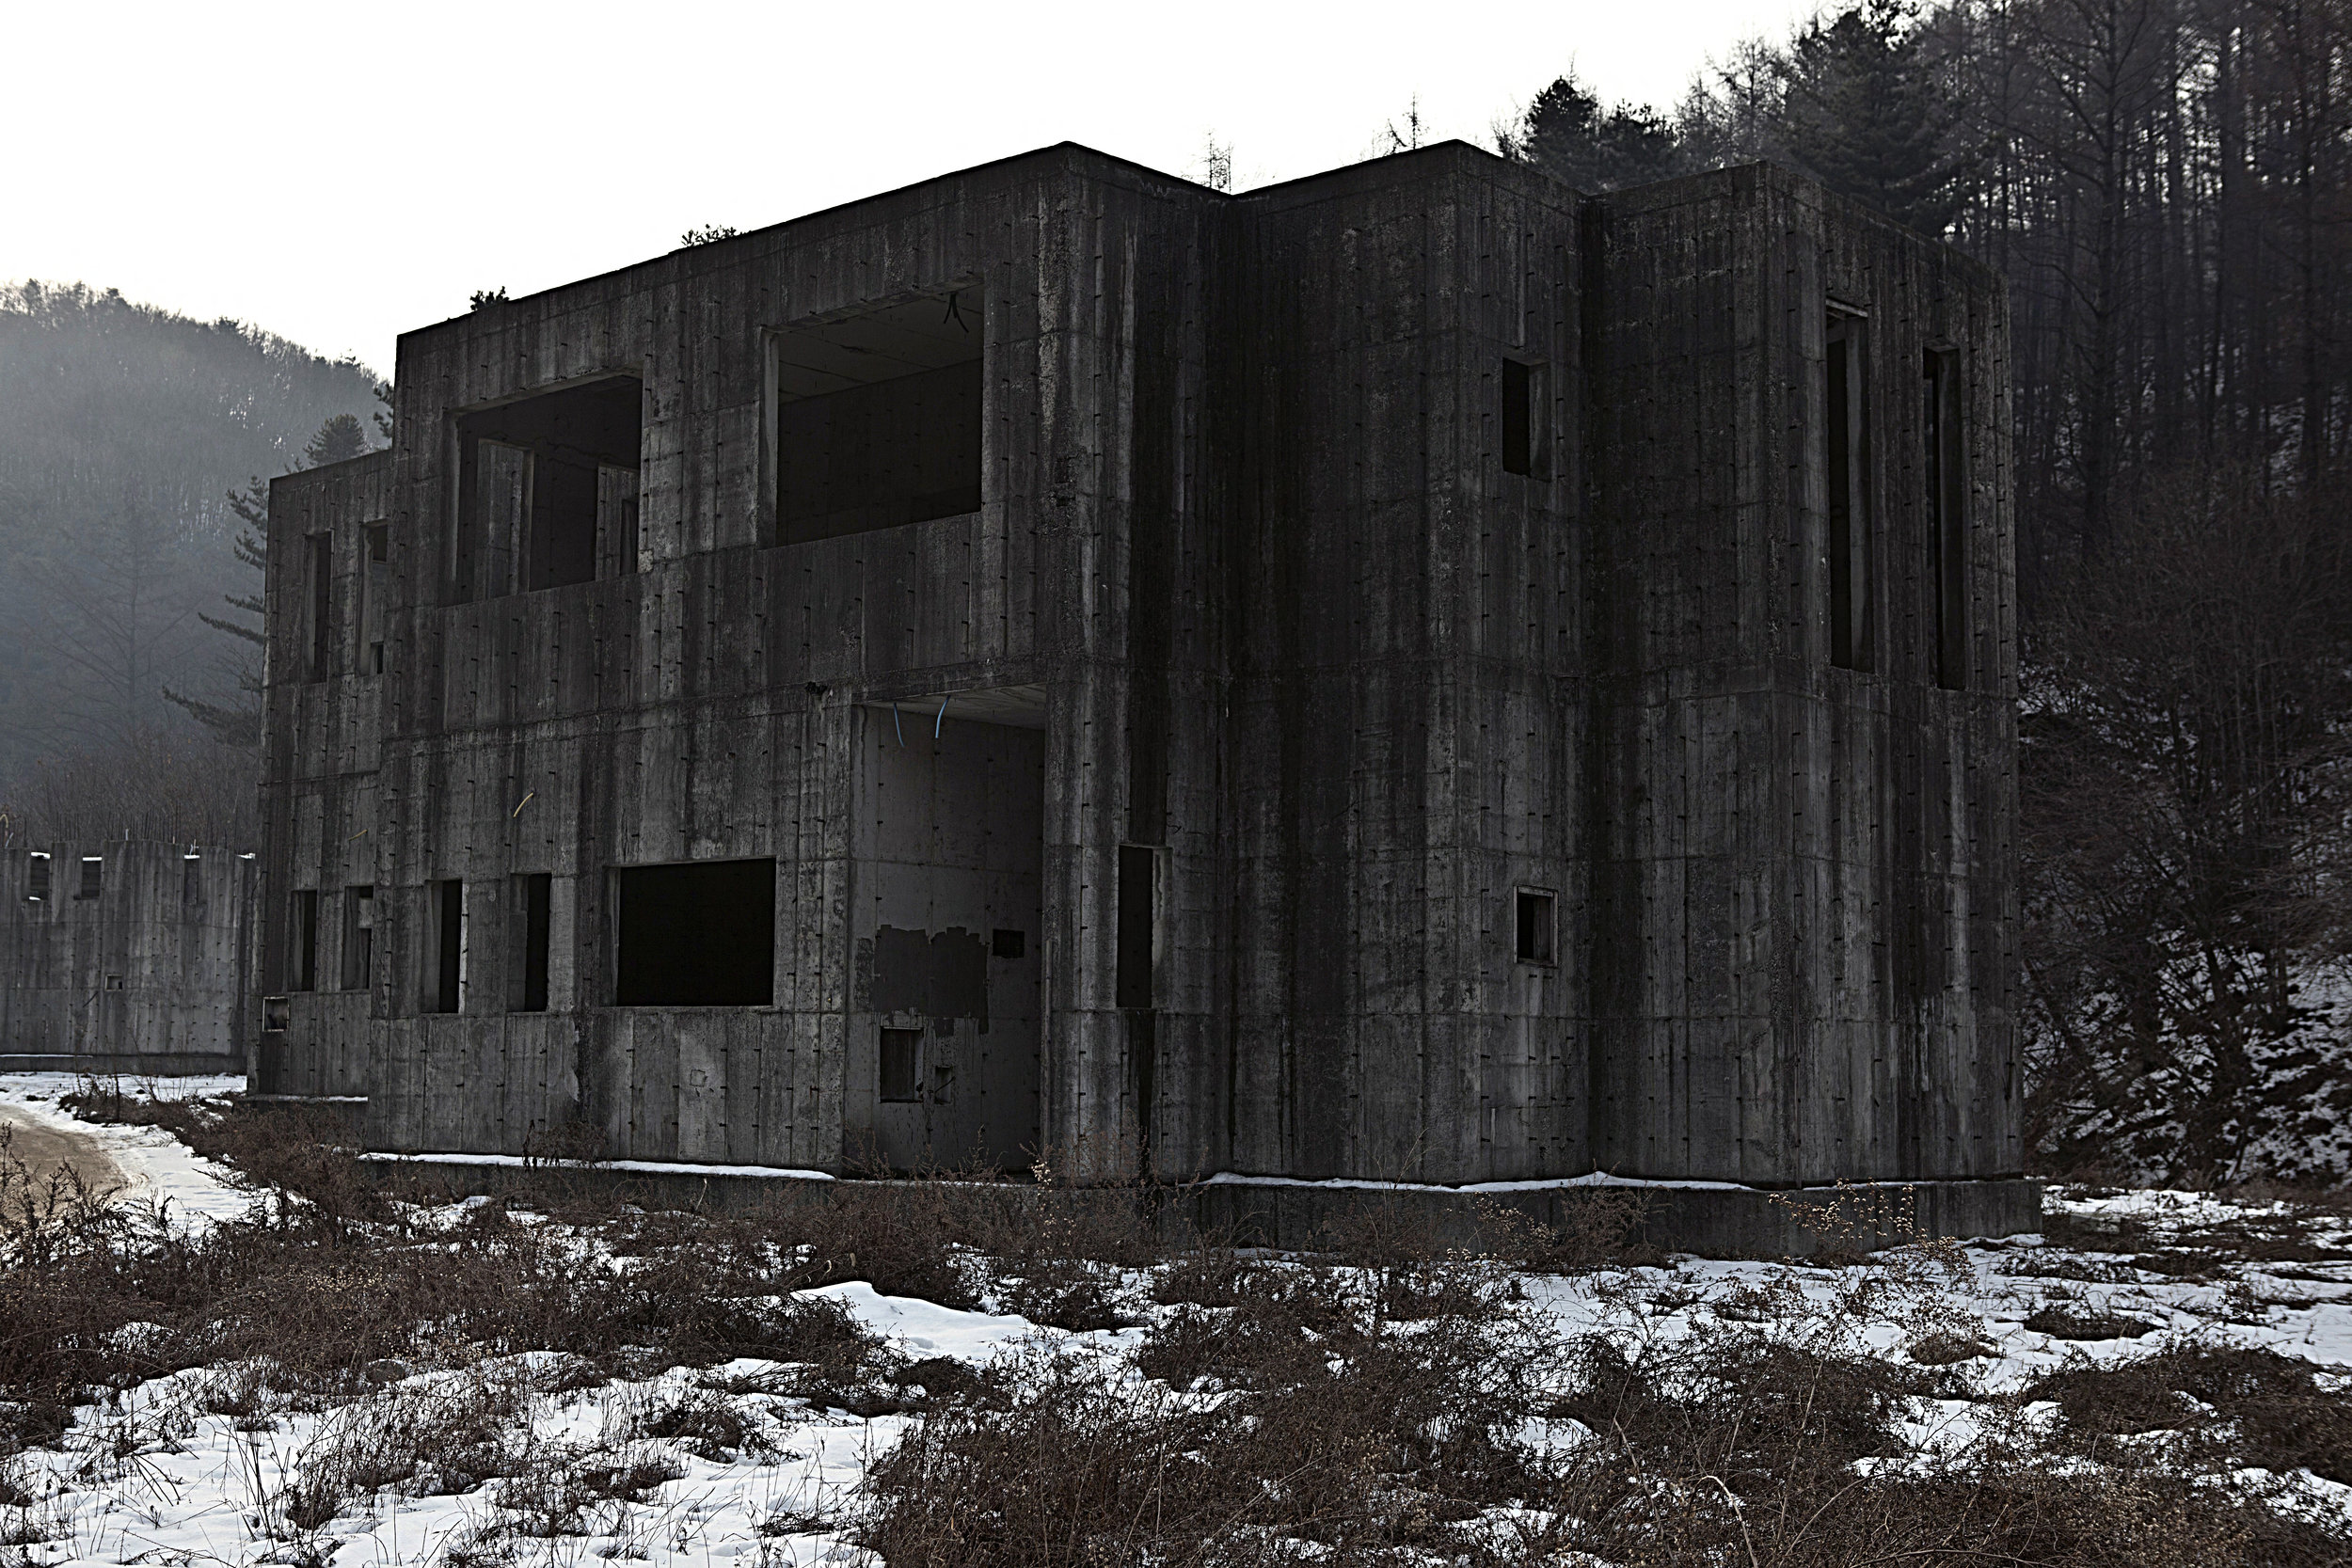 144, Jisam-ro, Dead Place Project #2, 2013